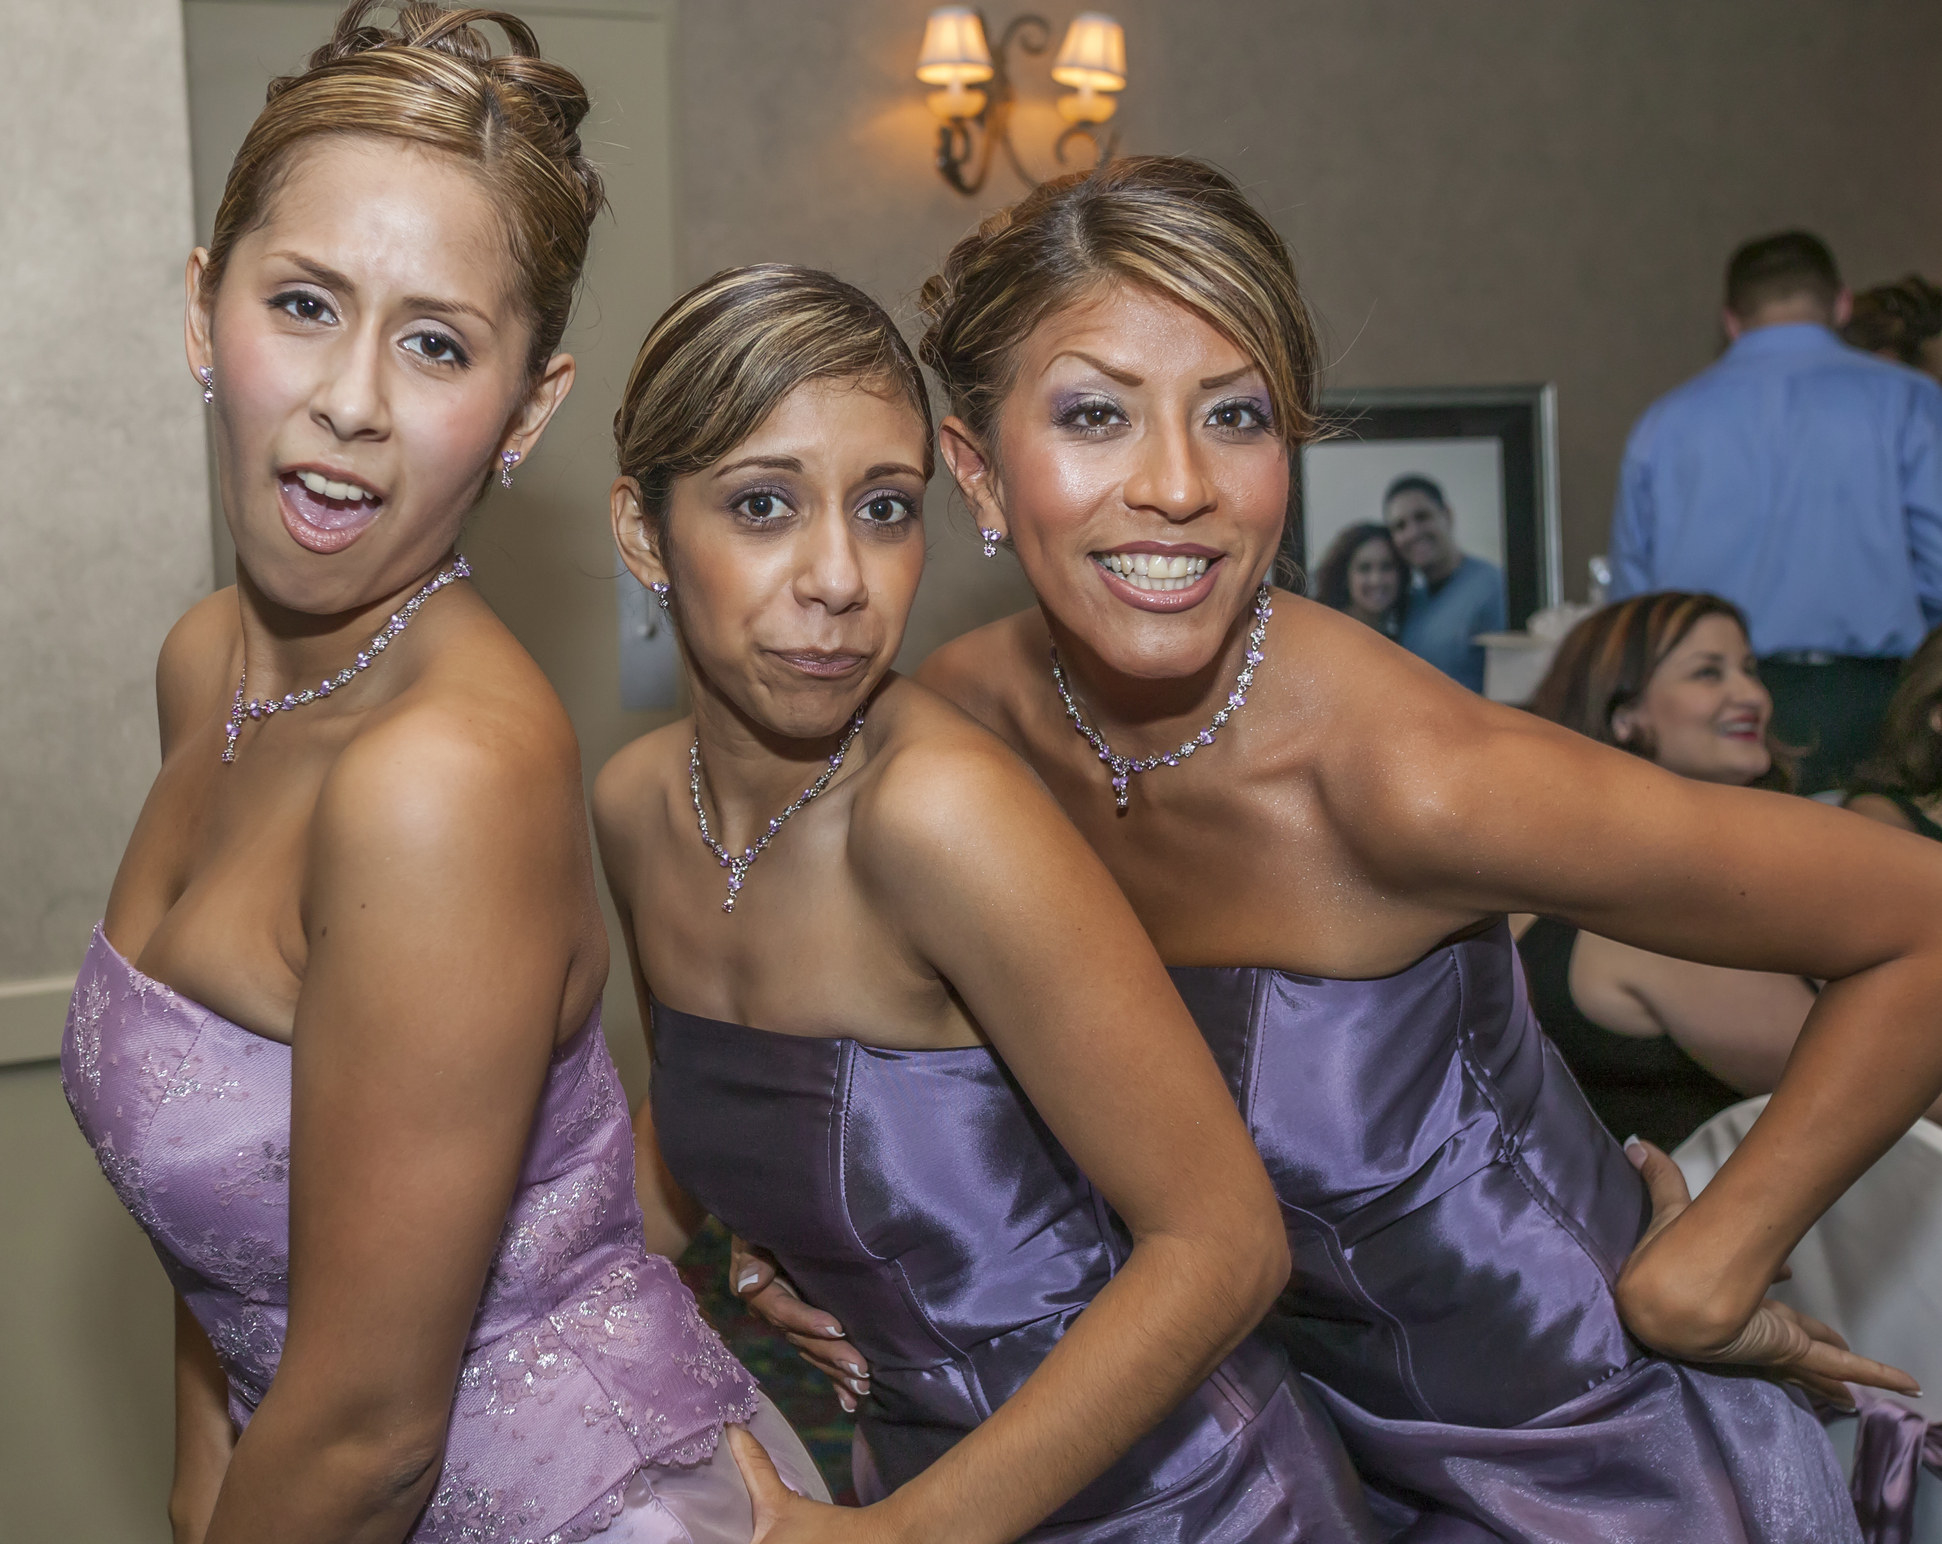 A trio of bridesmaids with matching dresses